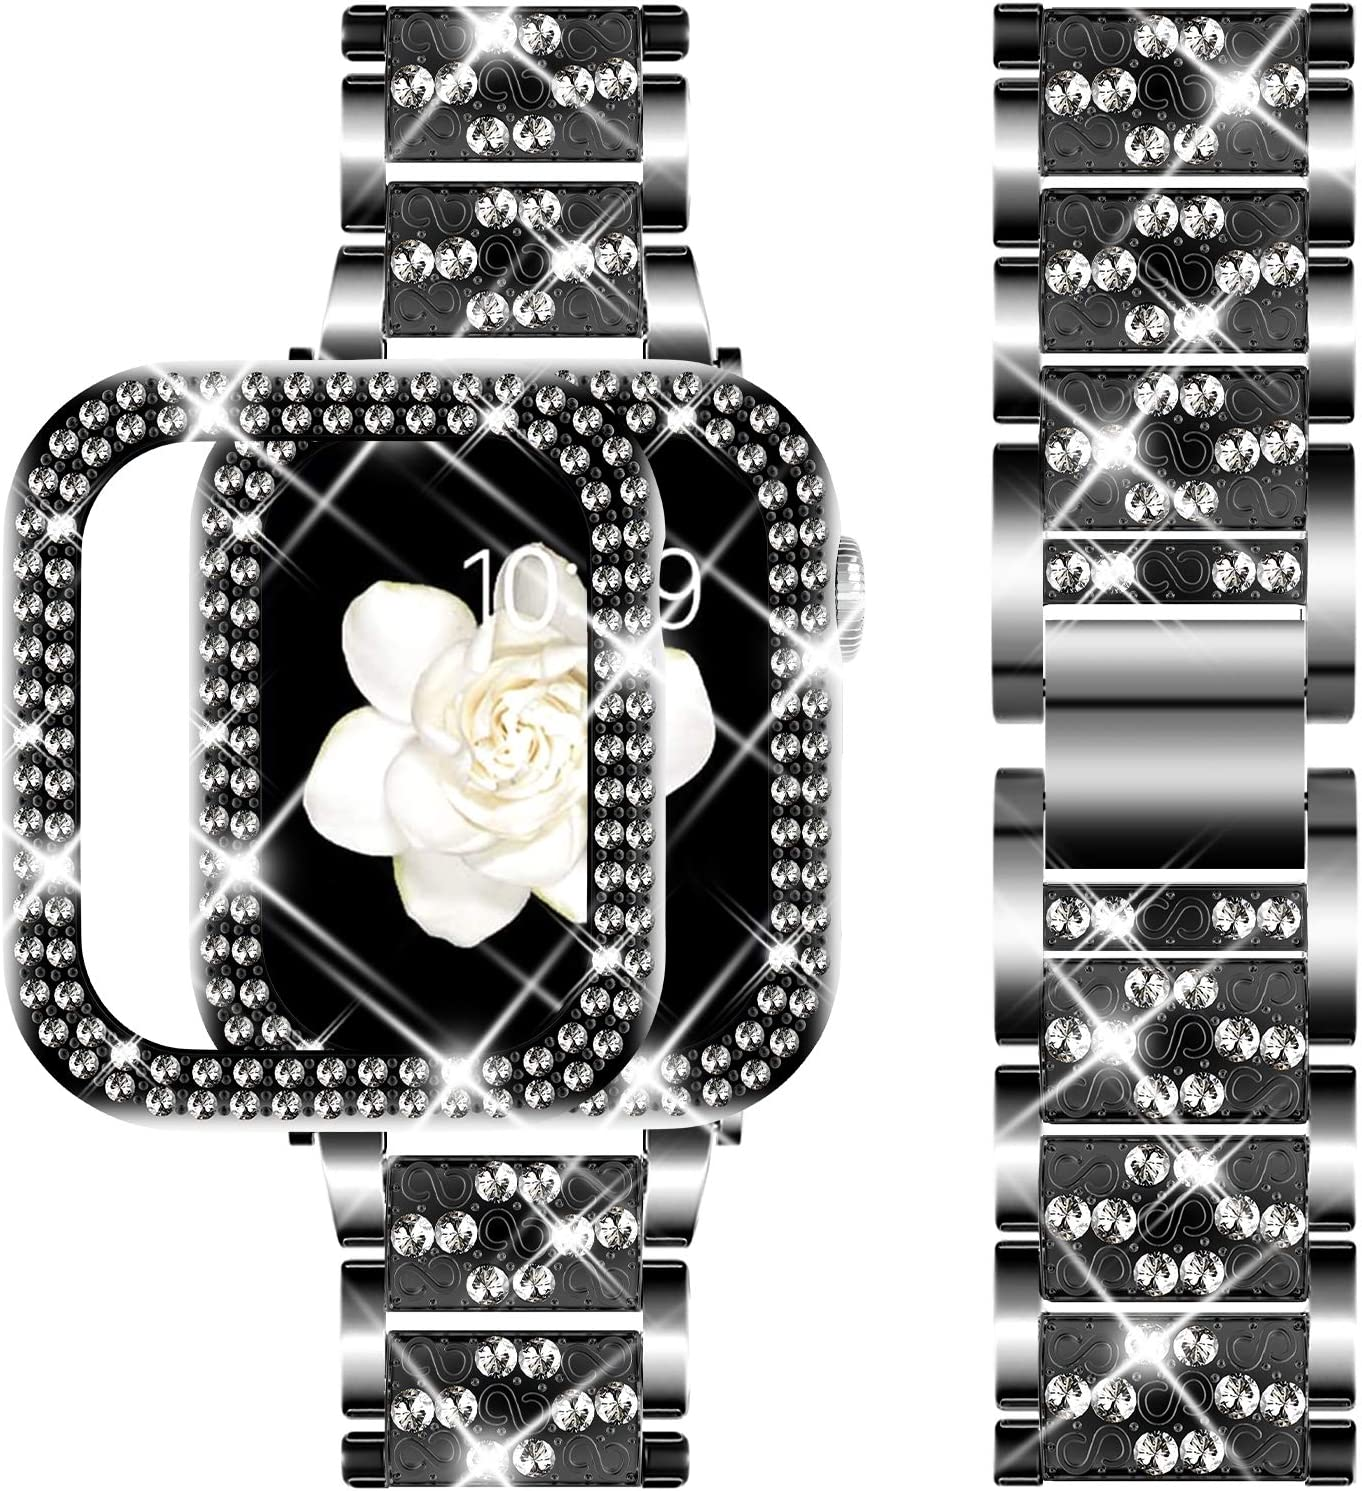 DABAOZA Compatible Apple Watch Band 38mm with Case, Bling Women Girl Dressy Crystal Band with Shiny Protective Bling Bumper Frame Cover for iWatch Series 3/2/1 (Black, 38mm)